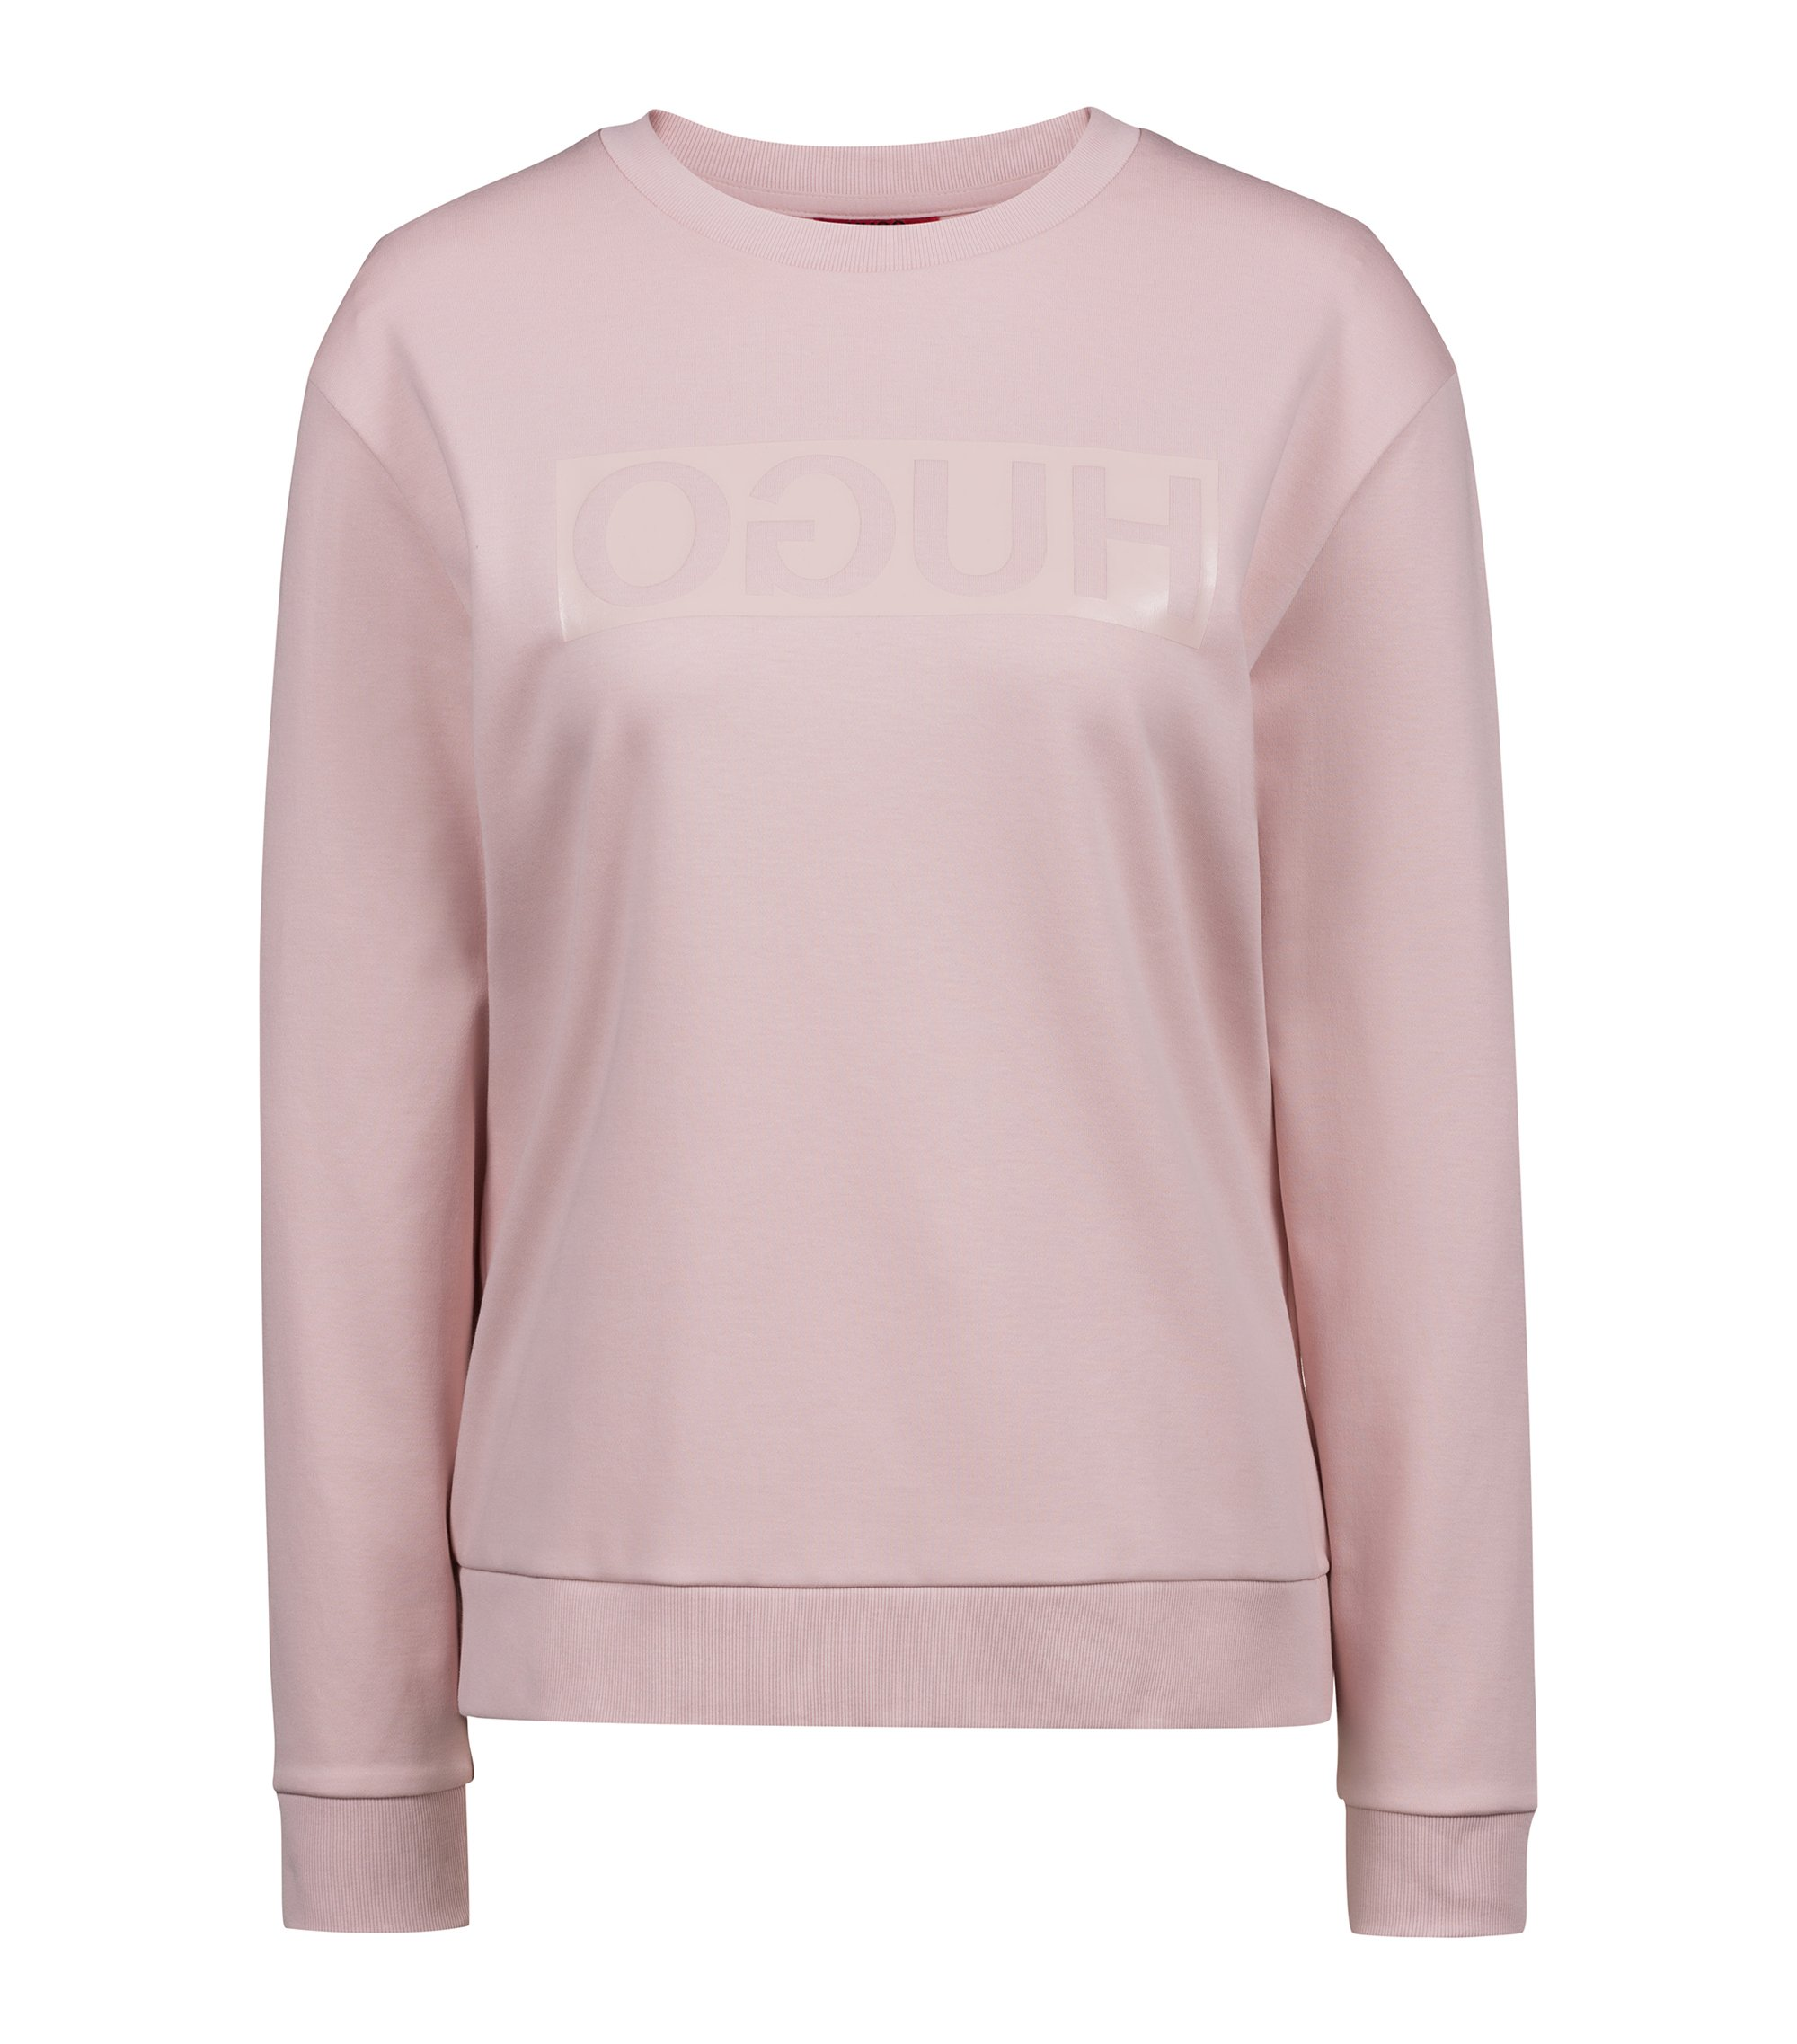 Camiseta relaxed fit de manga larga con logo invertido brillante, Rosa claro